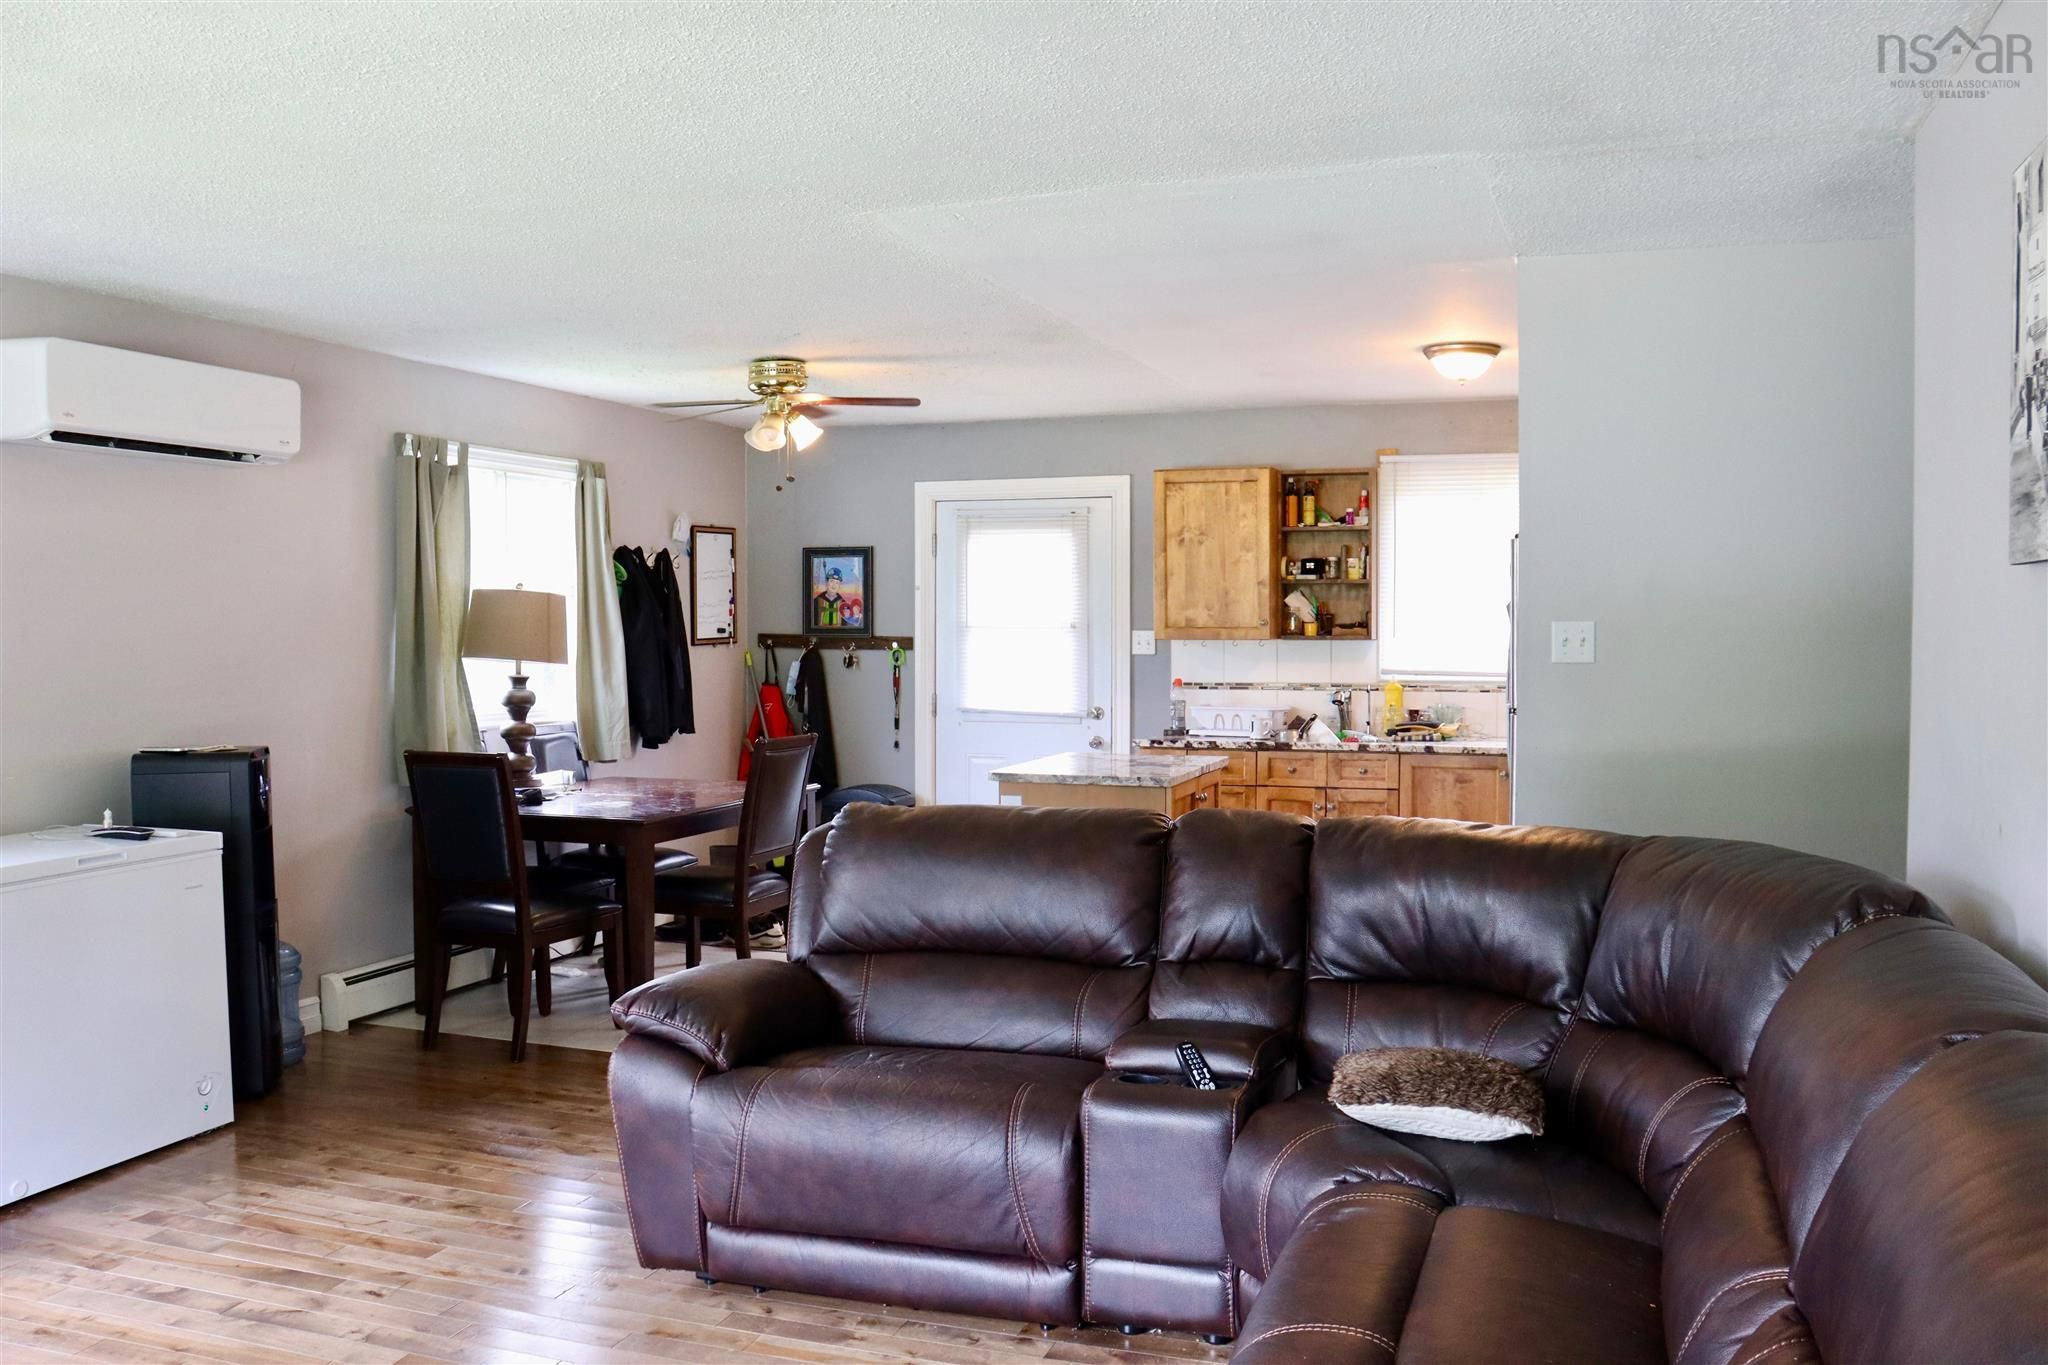 Photo 5: Photos: 327 Highway 3 in Simms Settlement: 405-Lunenburg County Residential for sale (South Shore)  : MLS®# 202120797